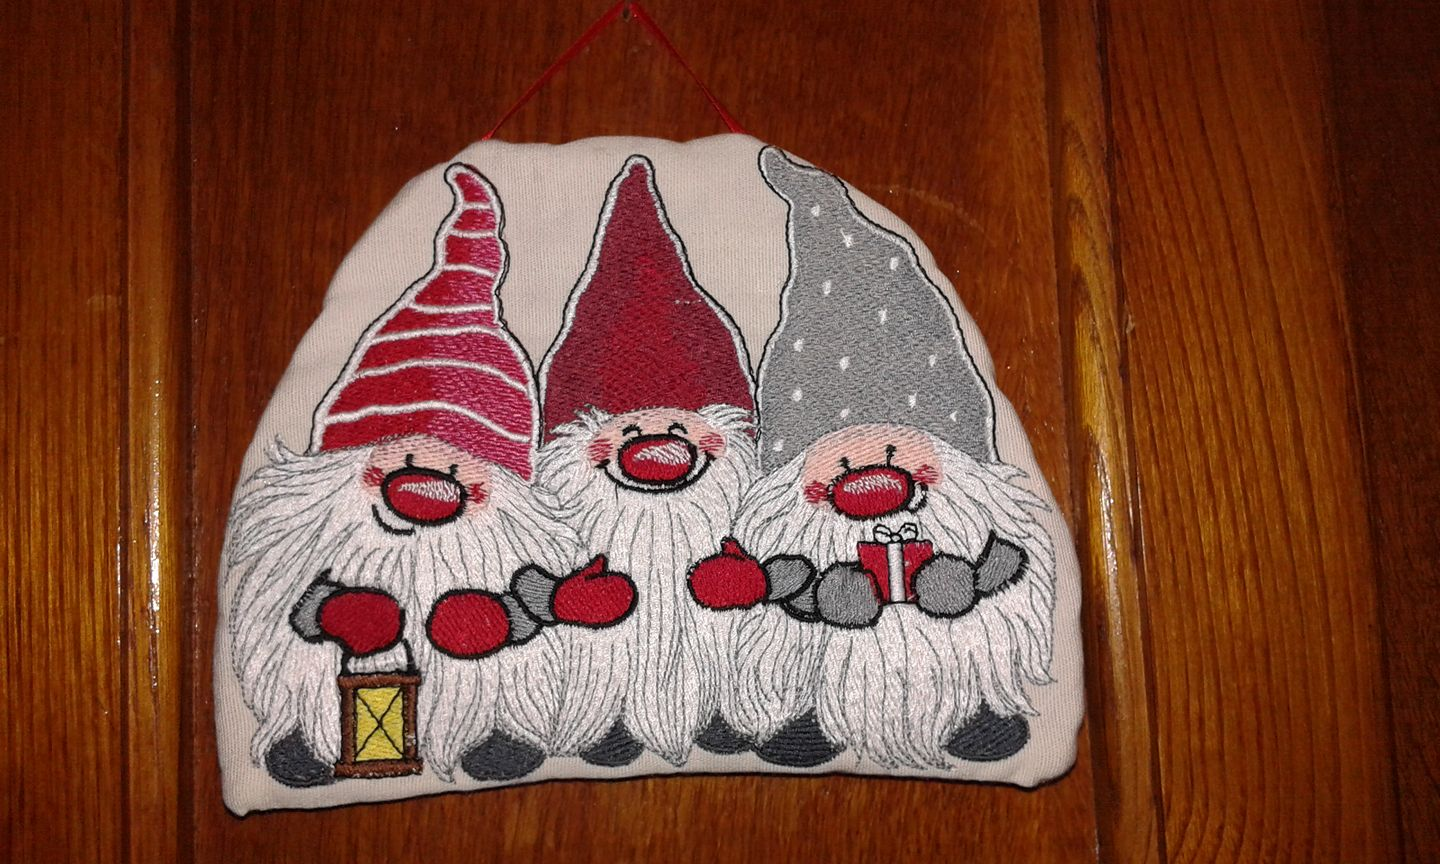 Dwarves design embroidered